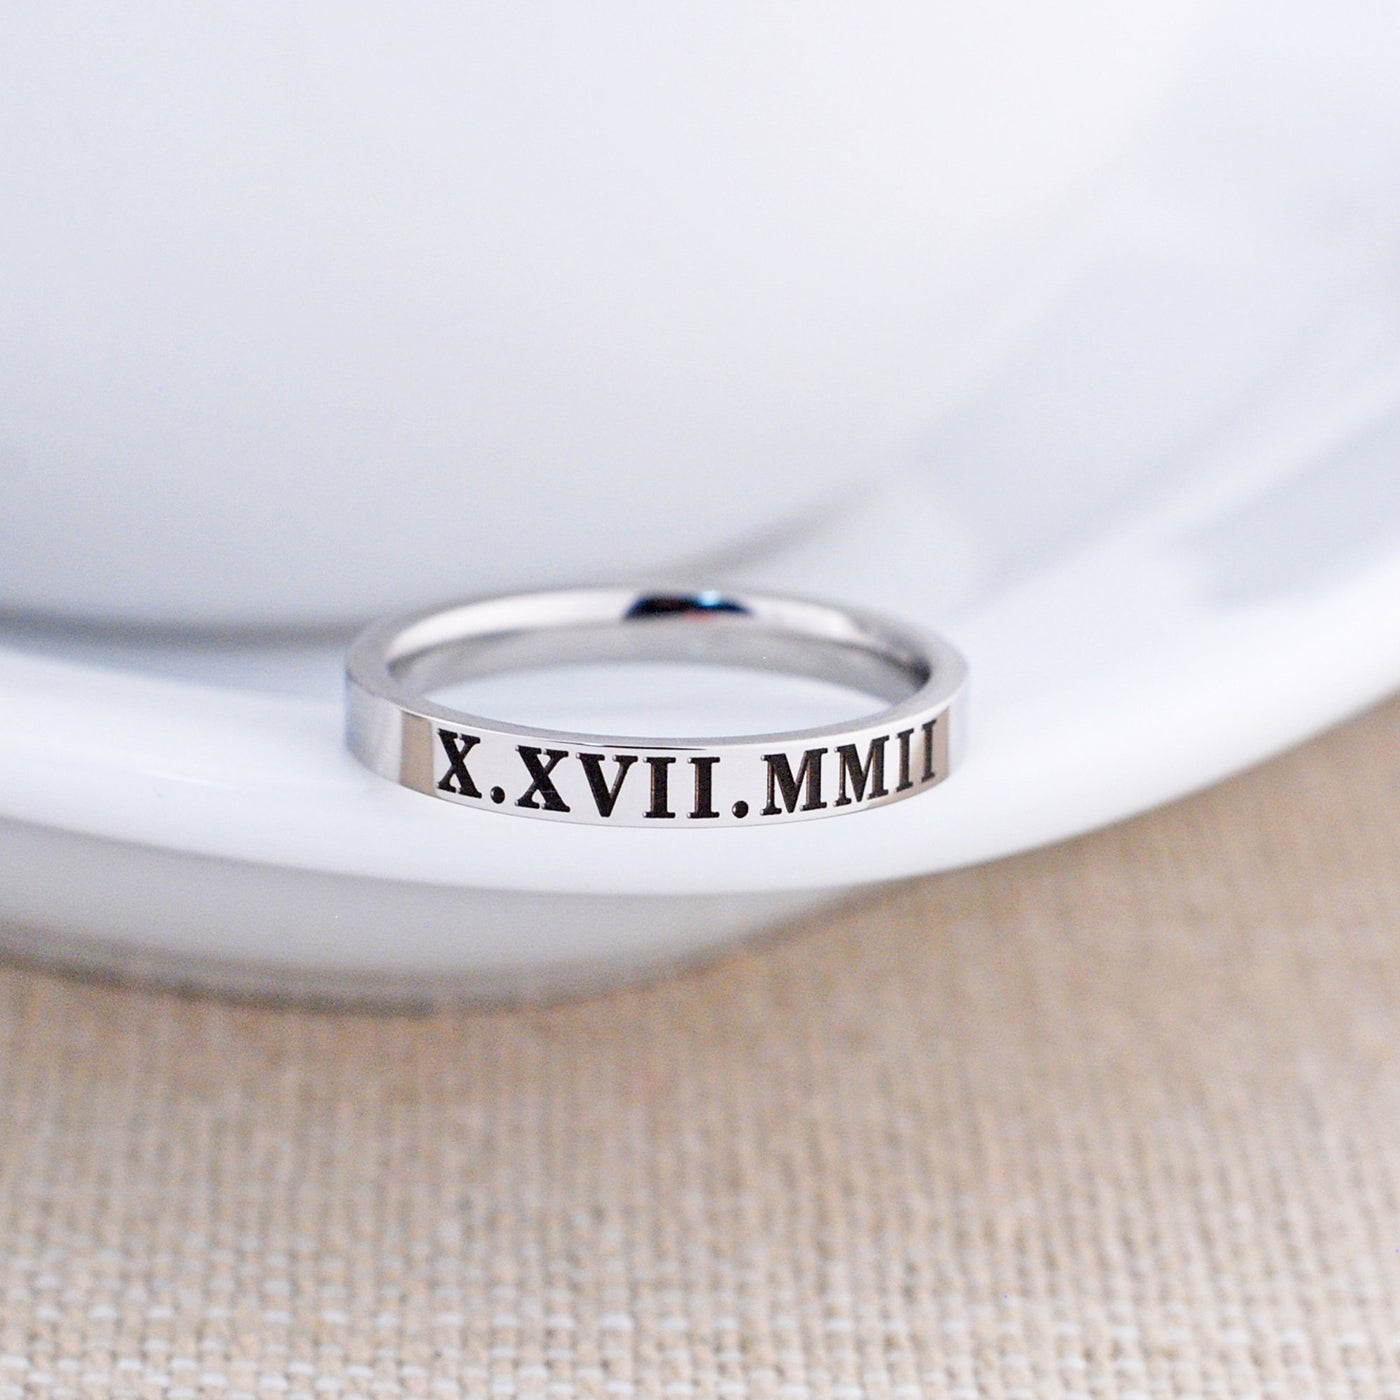 Roman Numerals Jewelry and Gifts